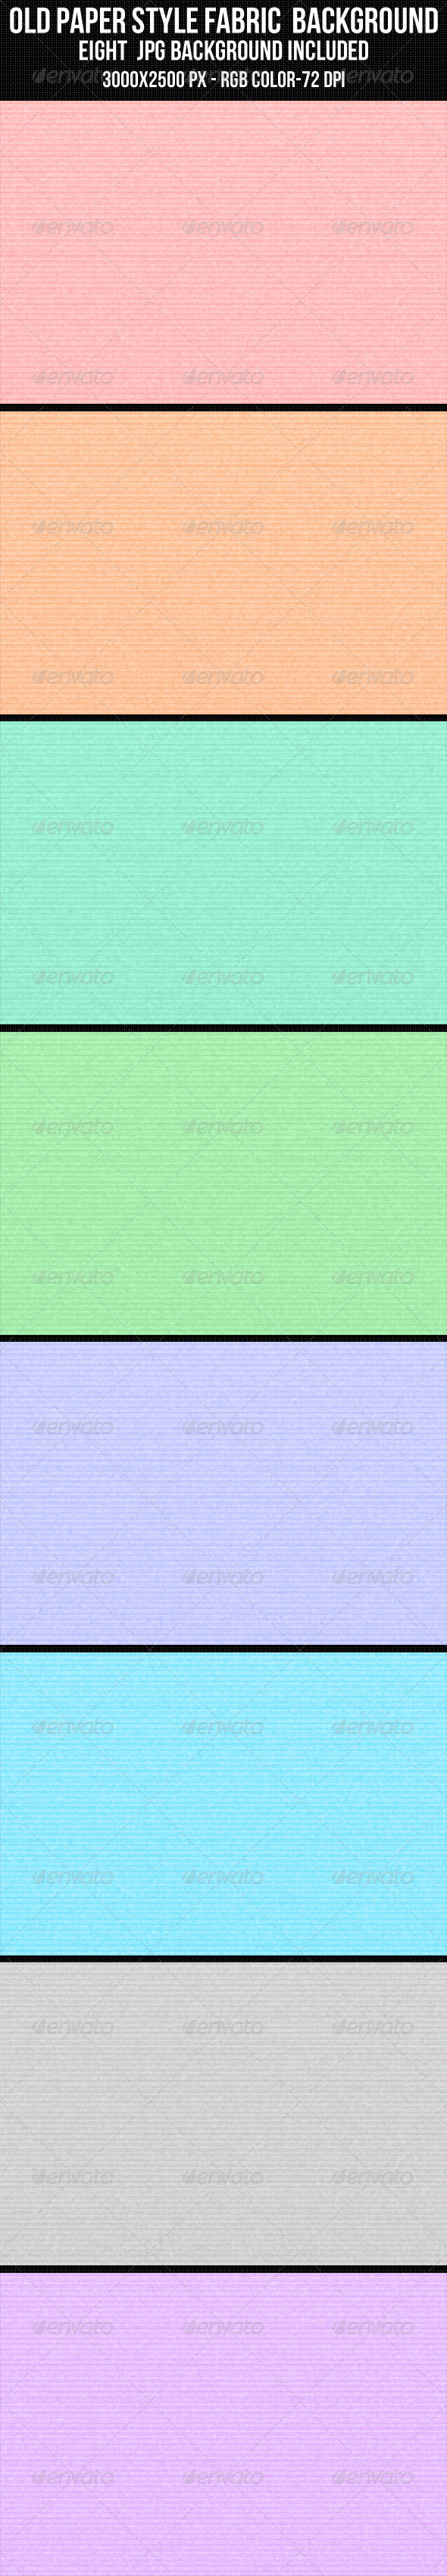 GraphicRiver Old Paper Style Fabric Background Set 4362214